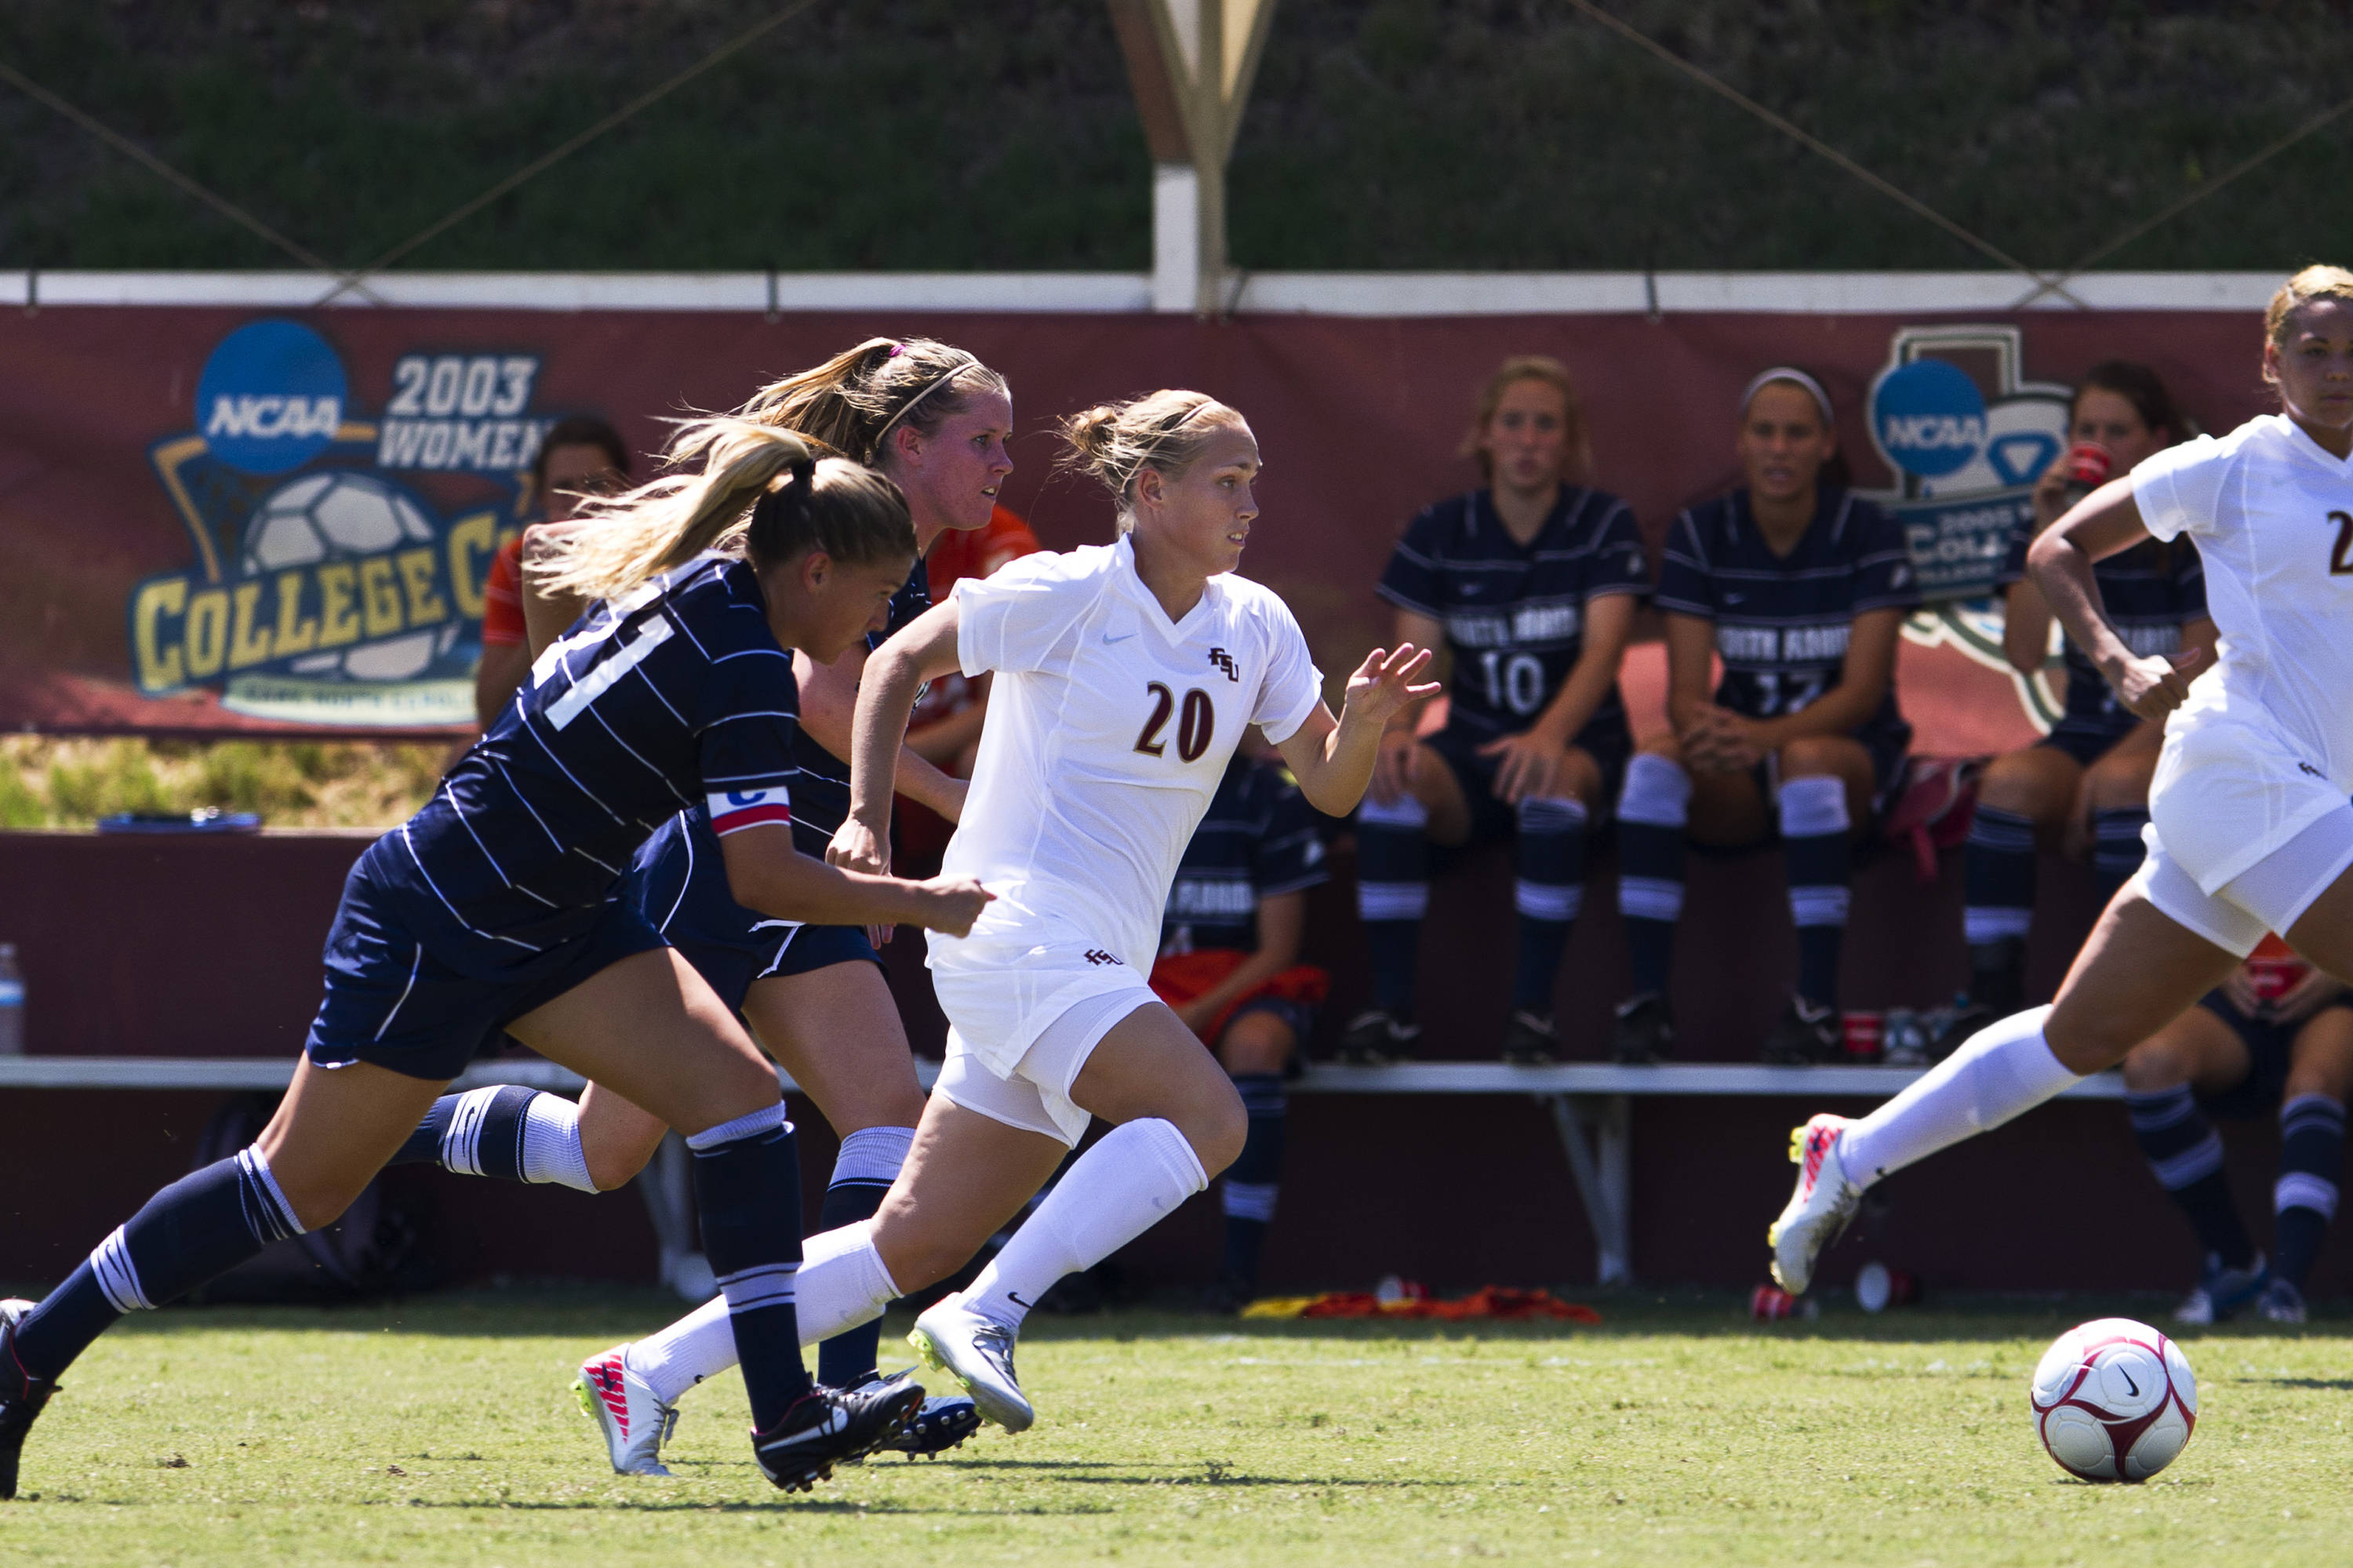 Janice Cayman (20) is pursued by two North Florida defenders as she carries the ball down the line in Sunday's game.